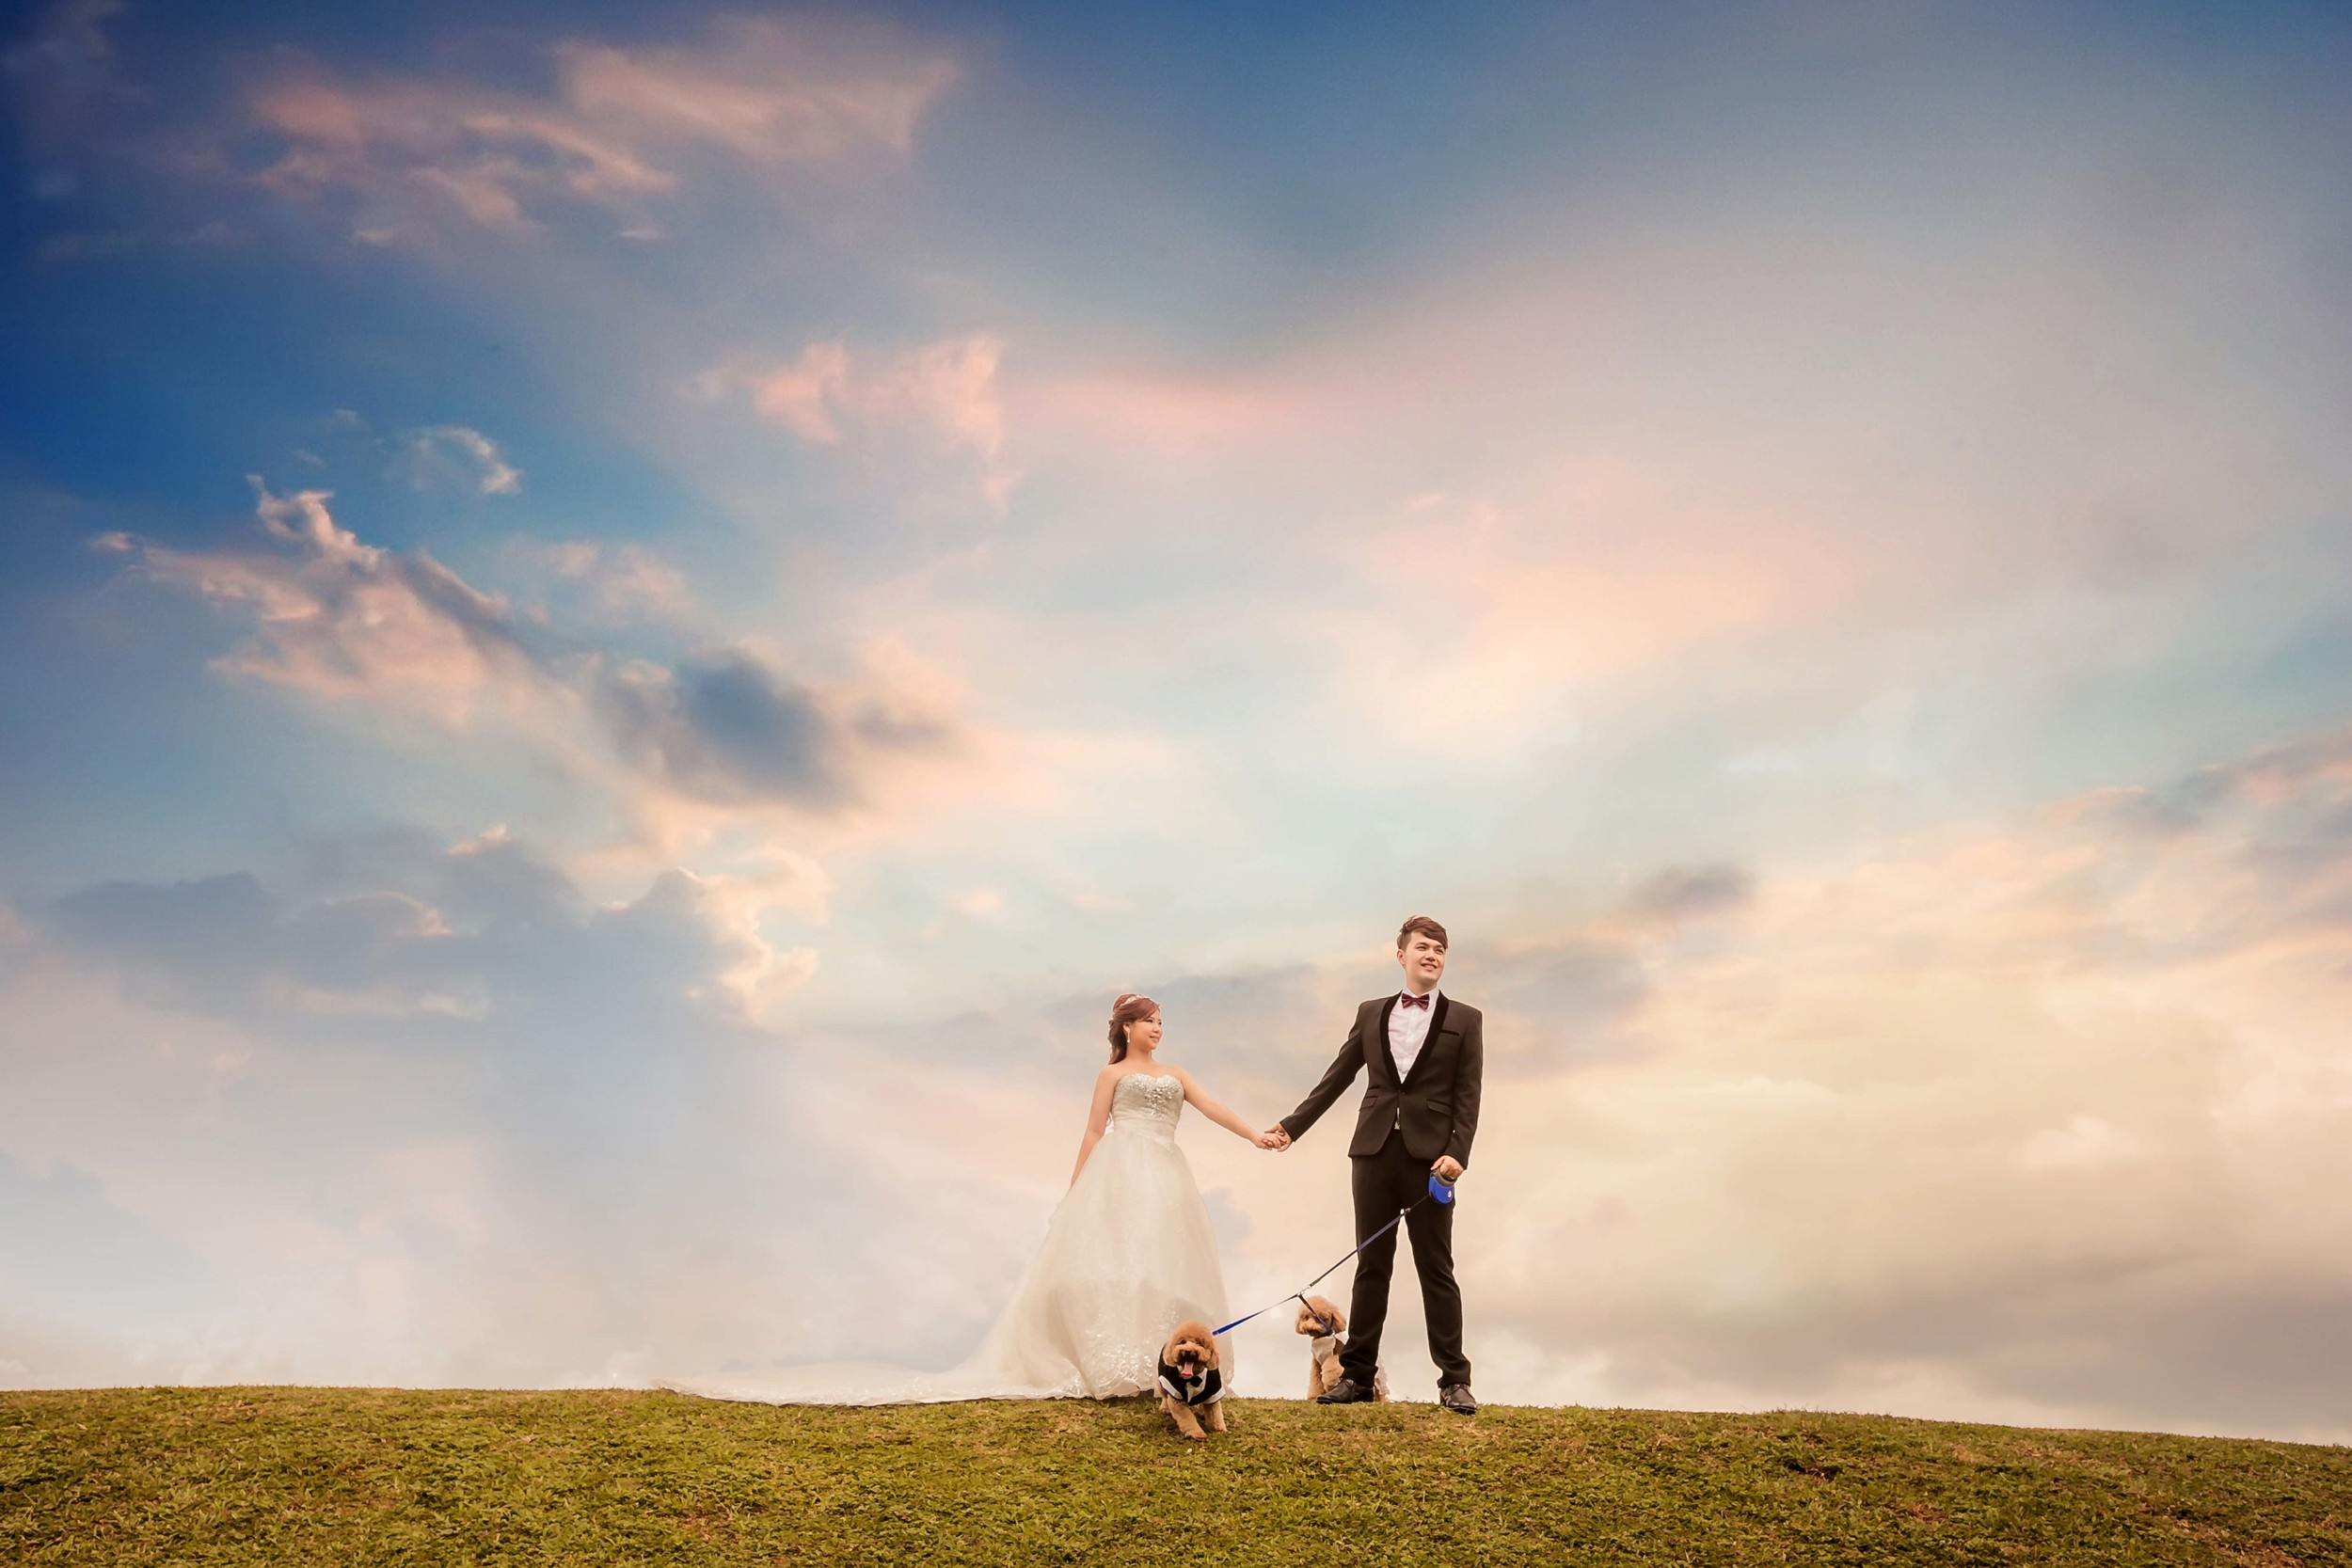 Pre-wedding-Photography-pet-dog